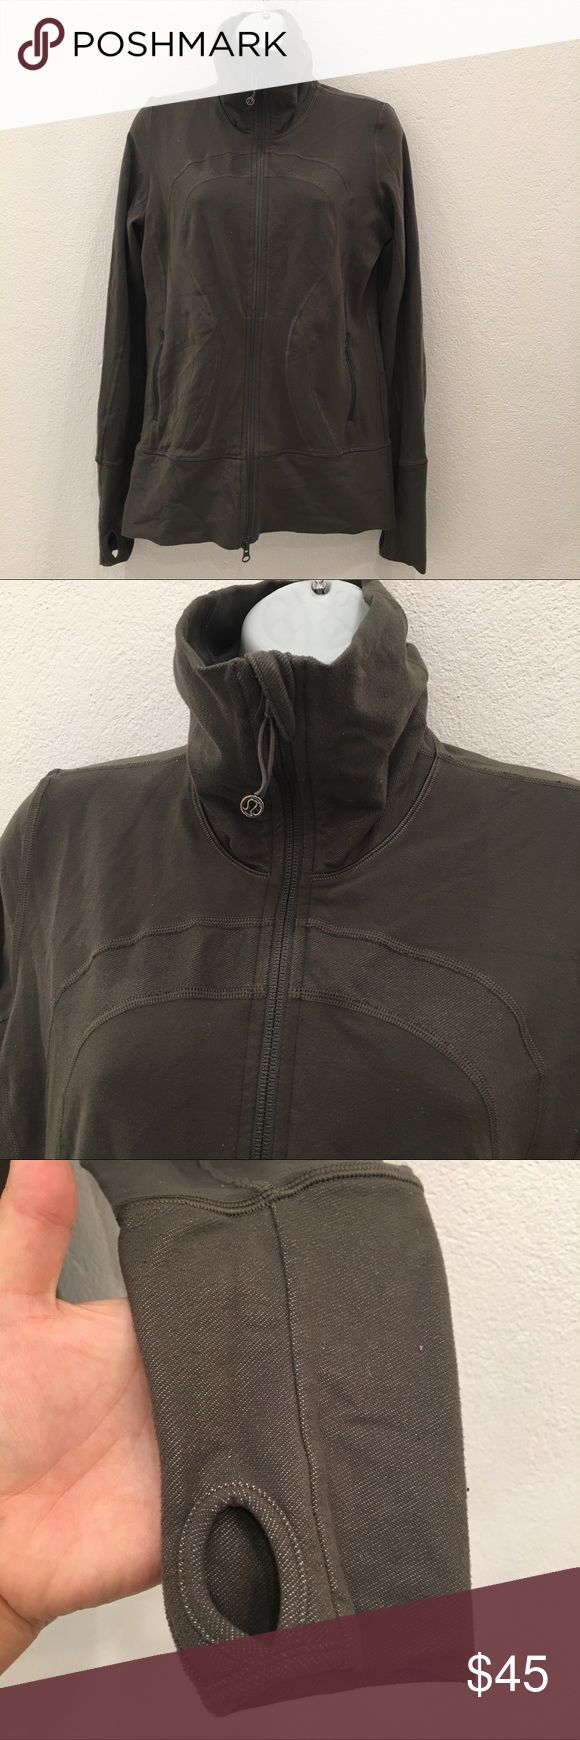 Lululemon Gray Green Full Zipup Jacket size 8 Preowned authentic Lululemon Gray Green Full Zipup Jacket size 8. Has thumbholes. Please look at pictures for better reference. Thank you for looking and happy shopping!! lululemon athletica Jackets & Coats